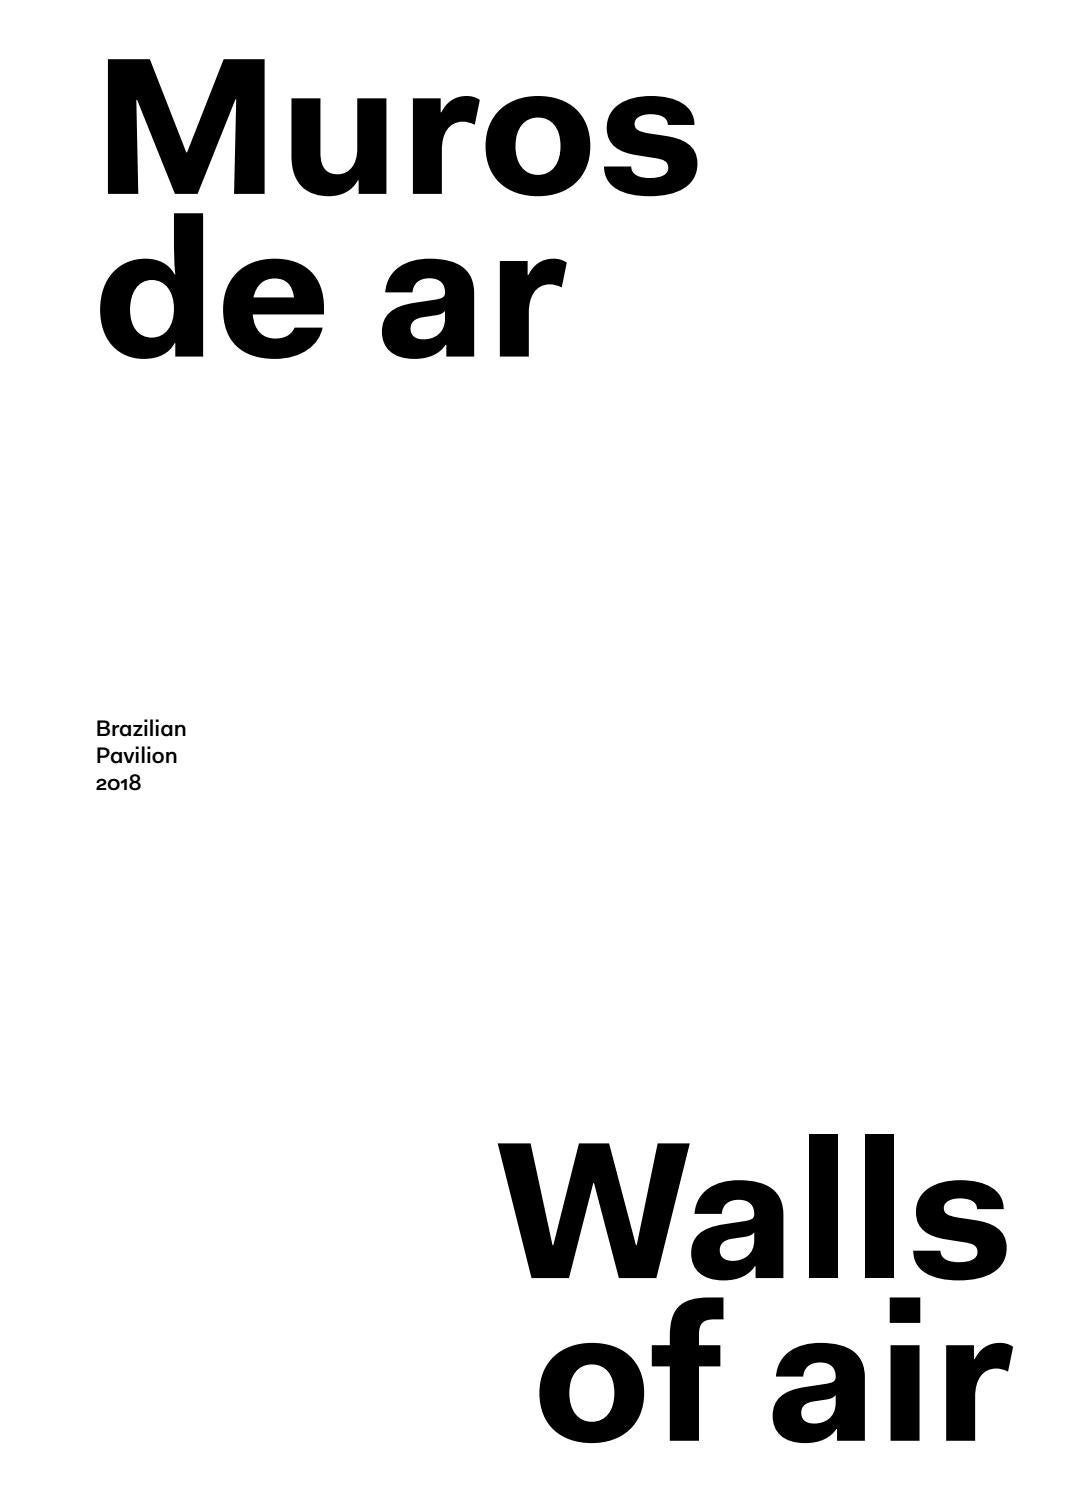 Walls of air - Catalogue by Bienal São Paulo - issuu cdb6bde824506